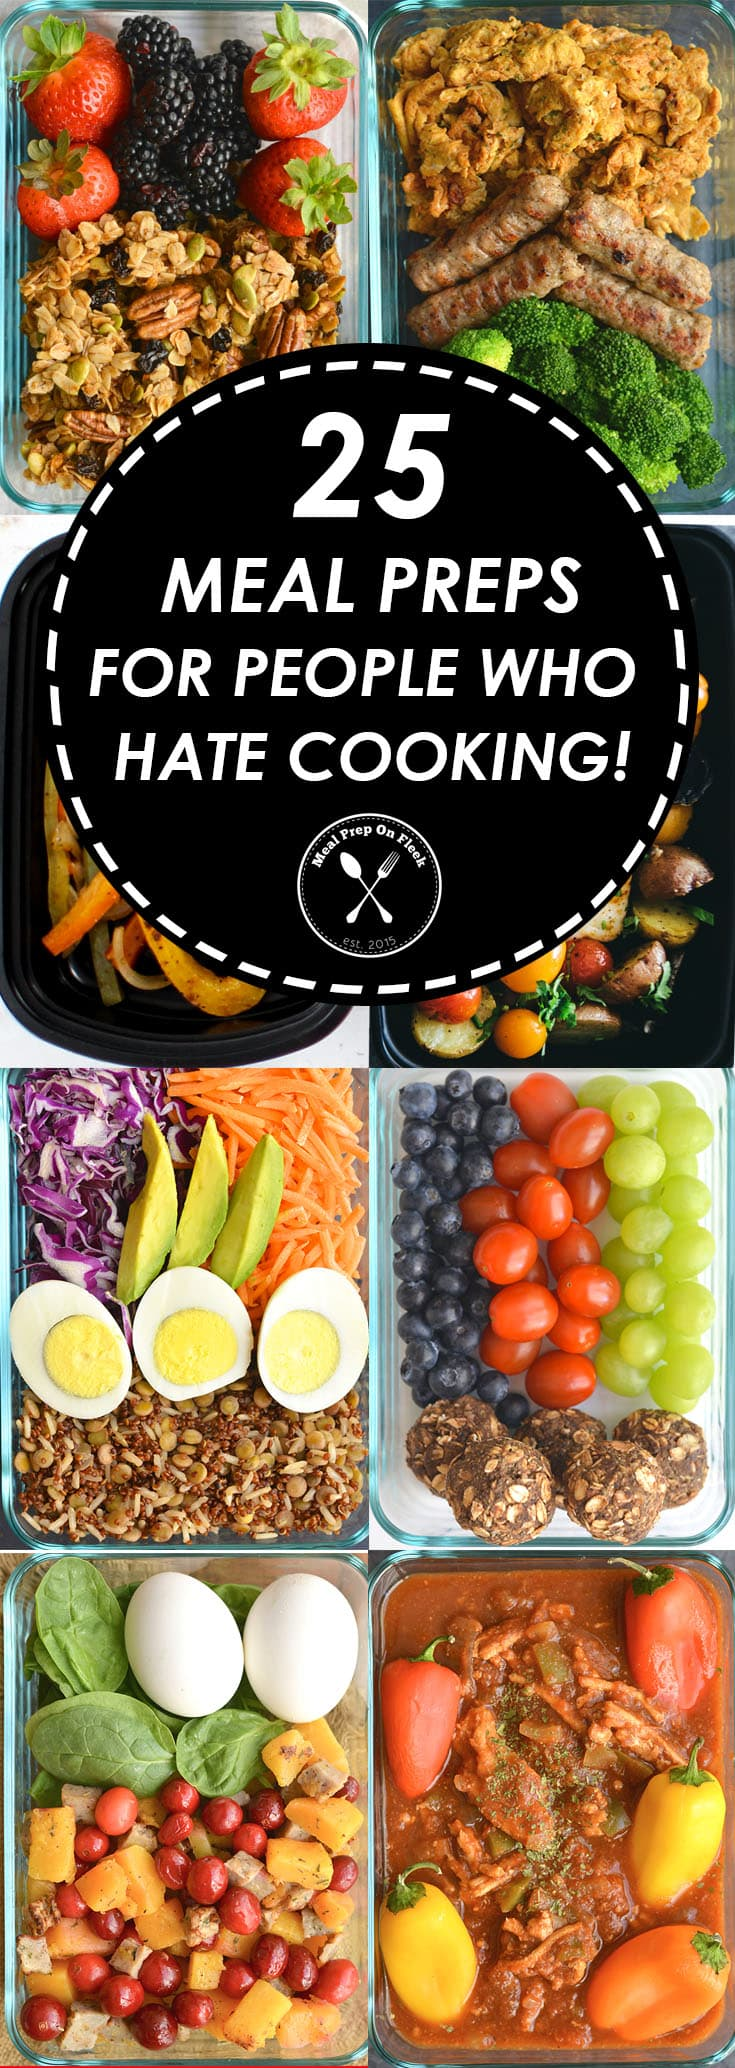 for people who hate cooking